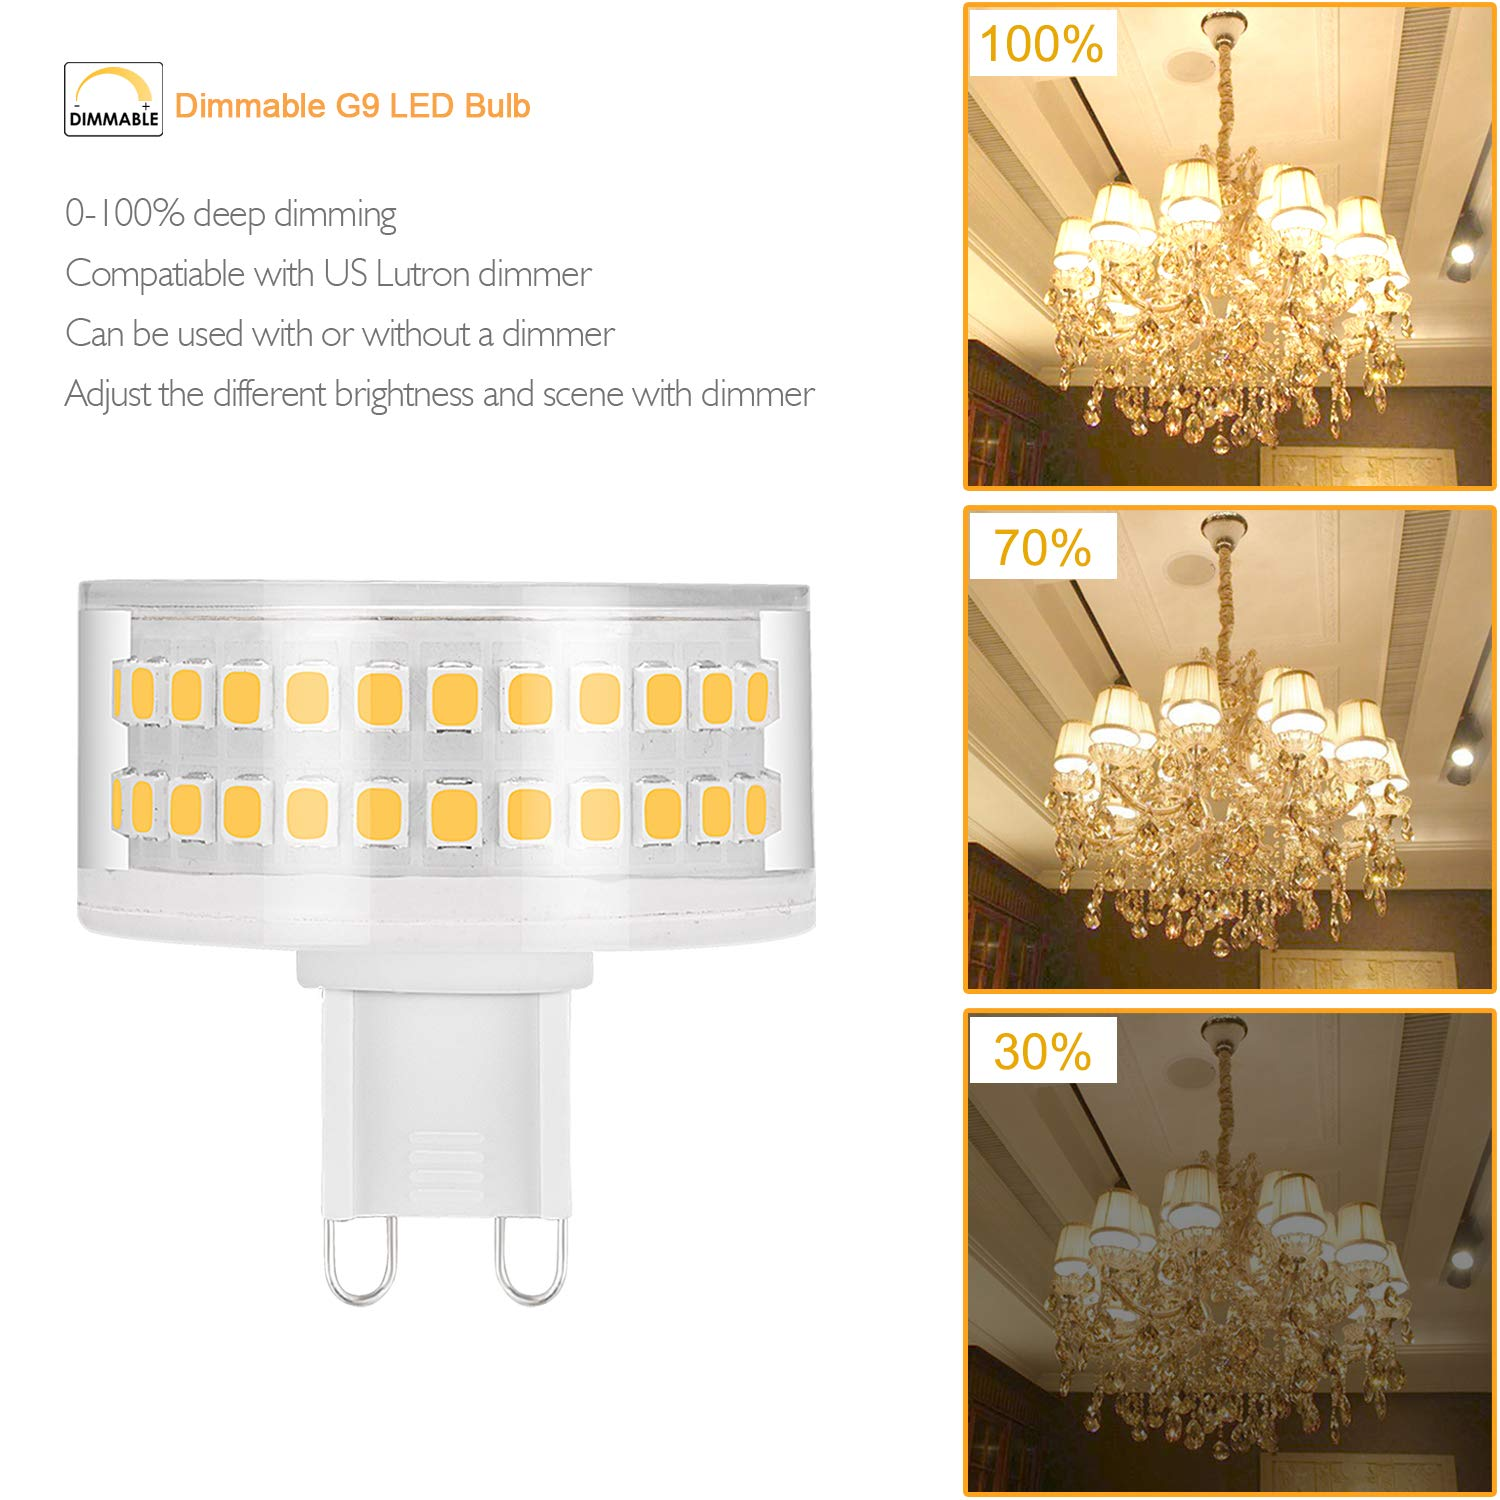 G9 Led Bulb Dimmable Warm White 2700k Light Bulbs 7W 60W 70W 80W Halogen G9 Lamp Equivalent AC110-130V Mushroom Shape Lighting 360 Degree Beam Angle(Pack of ...